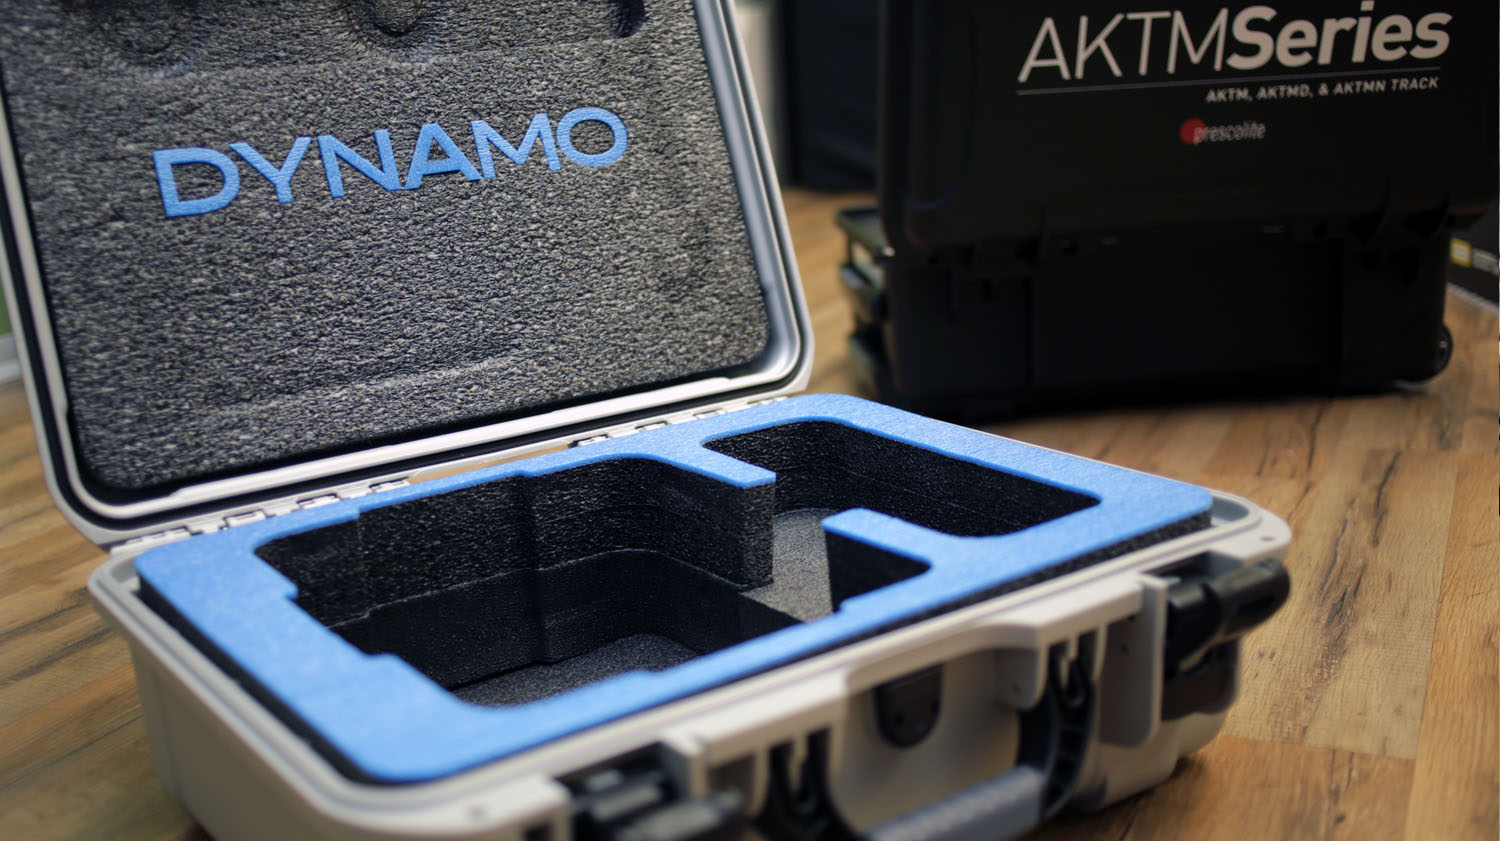 PROTECTION - Storage Cases & Material HandlingRDG optimized designs will protect your most precious cargofrom damage while in transit around the world or through your factory.